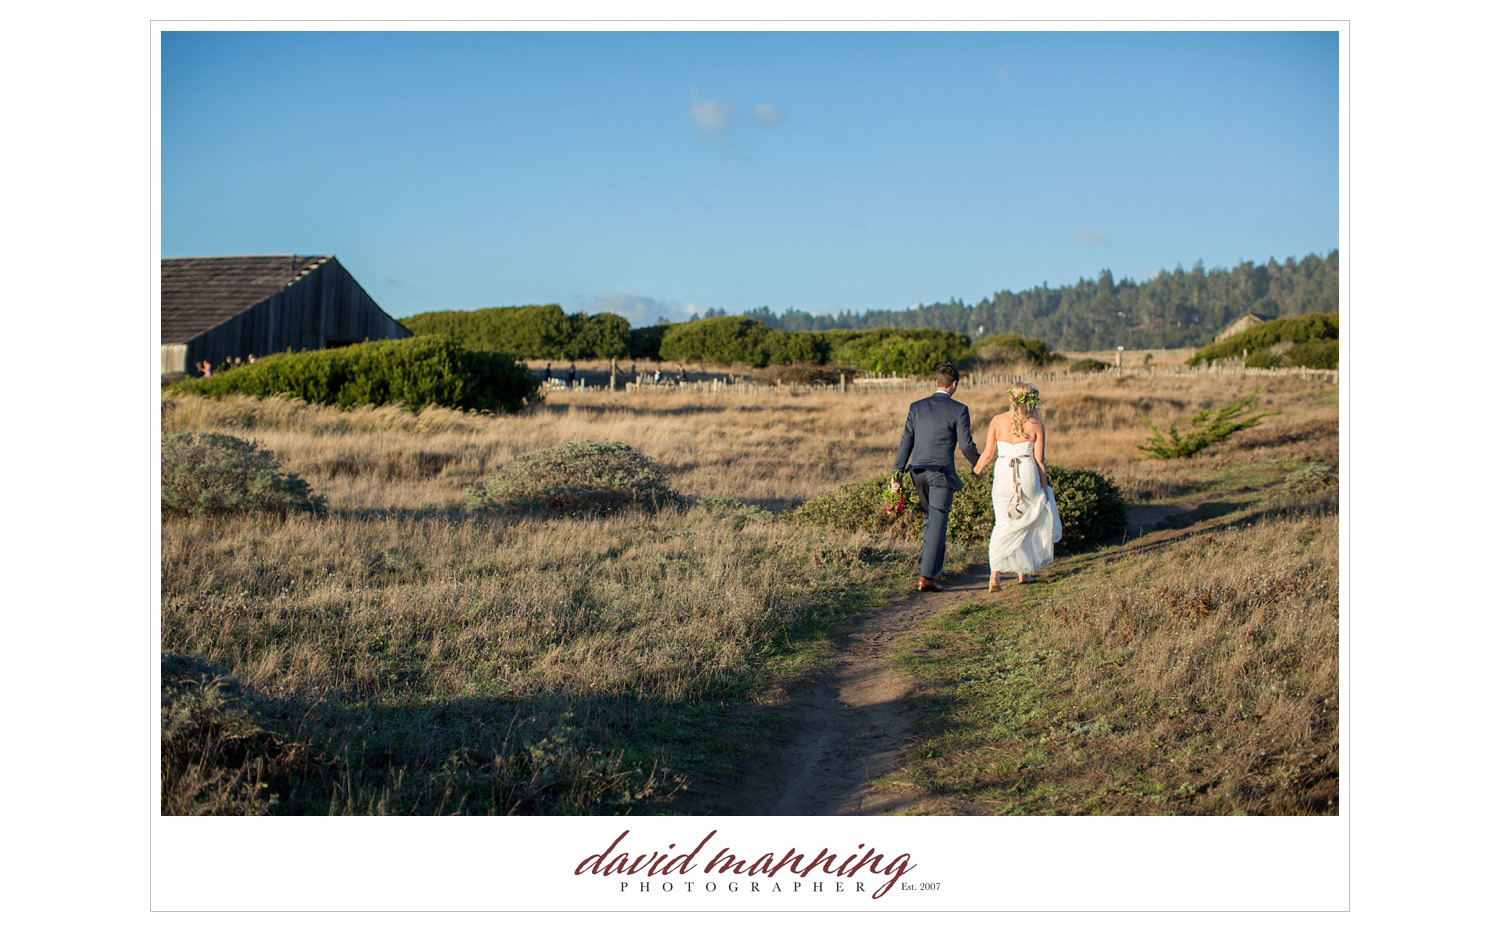 Sea-Ranch-Sonoma-Destination-Wedding-David-Manning-Photographers-141101-0039.jpg